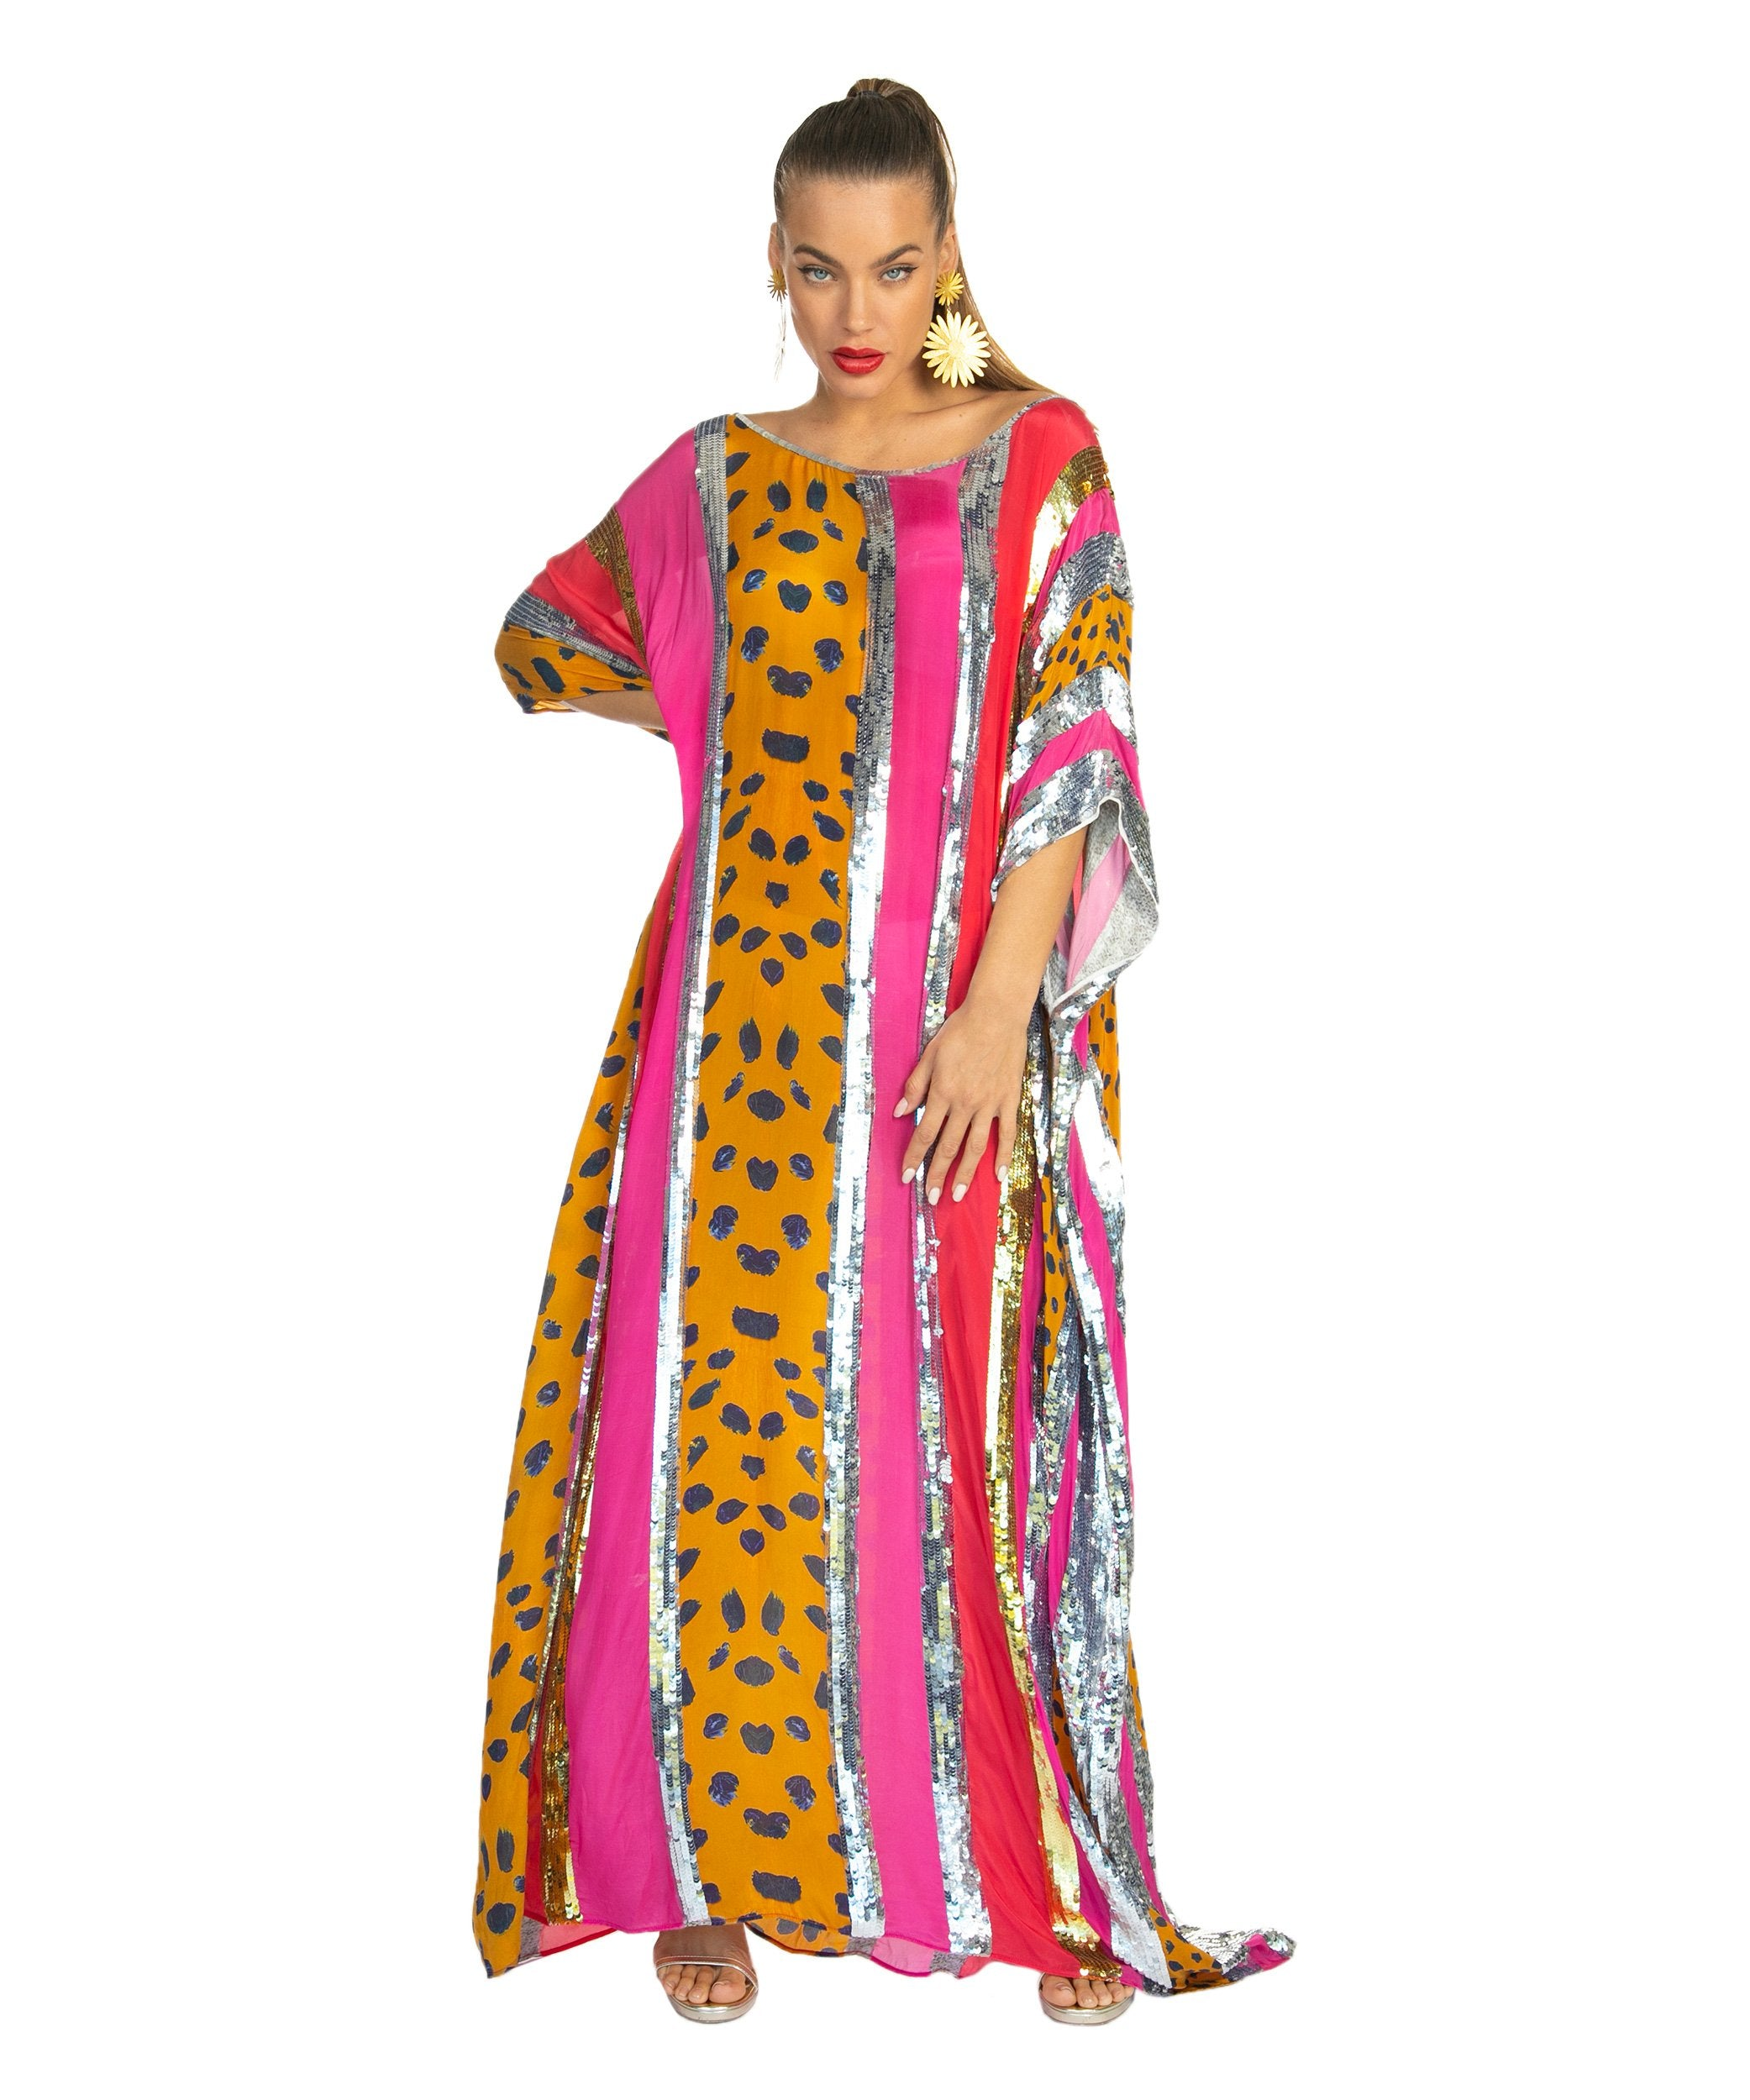 The Machito Kaftan by Bonita Collective